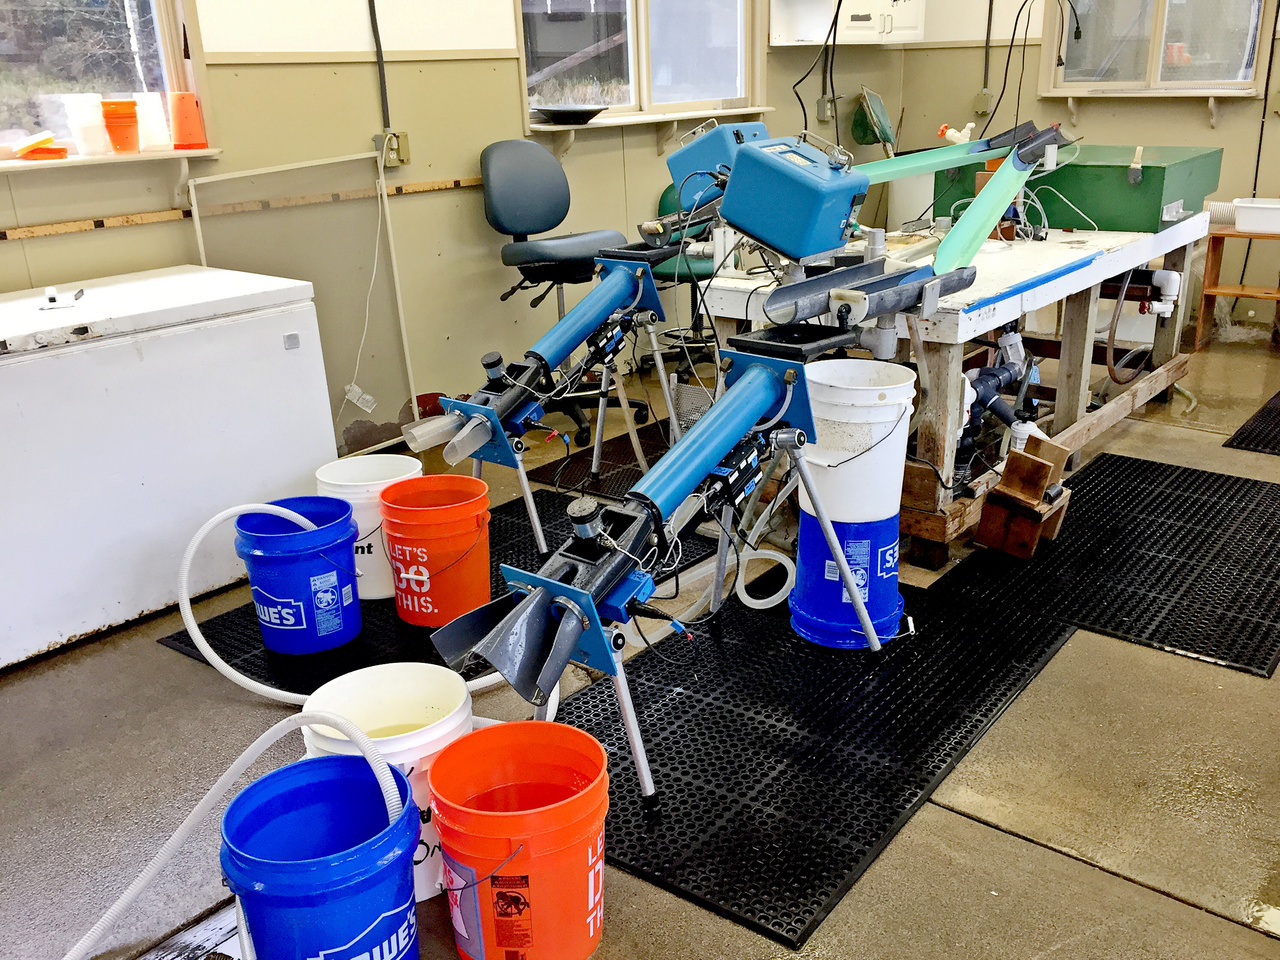 2)Our tagging setup. Fish are clipped in the green tank and sent down the water slides to the blue, cube-shaped machines, which cut individual tags and insert them into the fish. The fish are then passed through the blue, cylindrical detectors to verify that they have a tag.